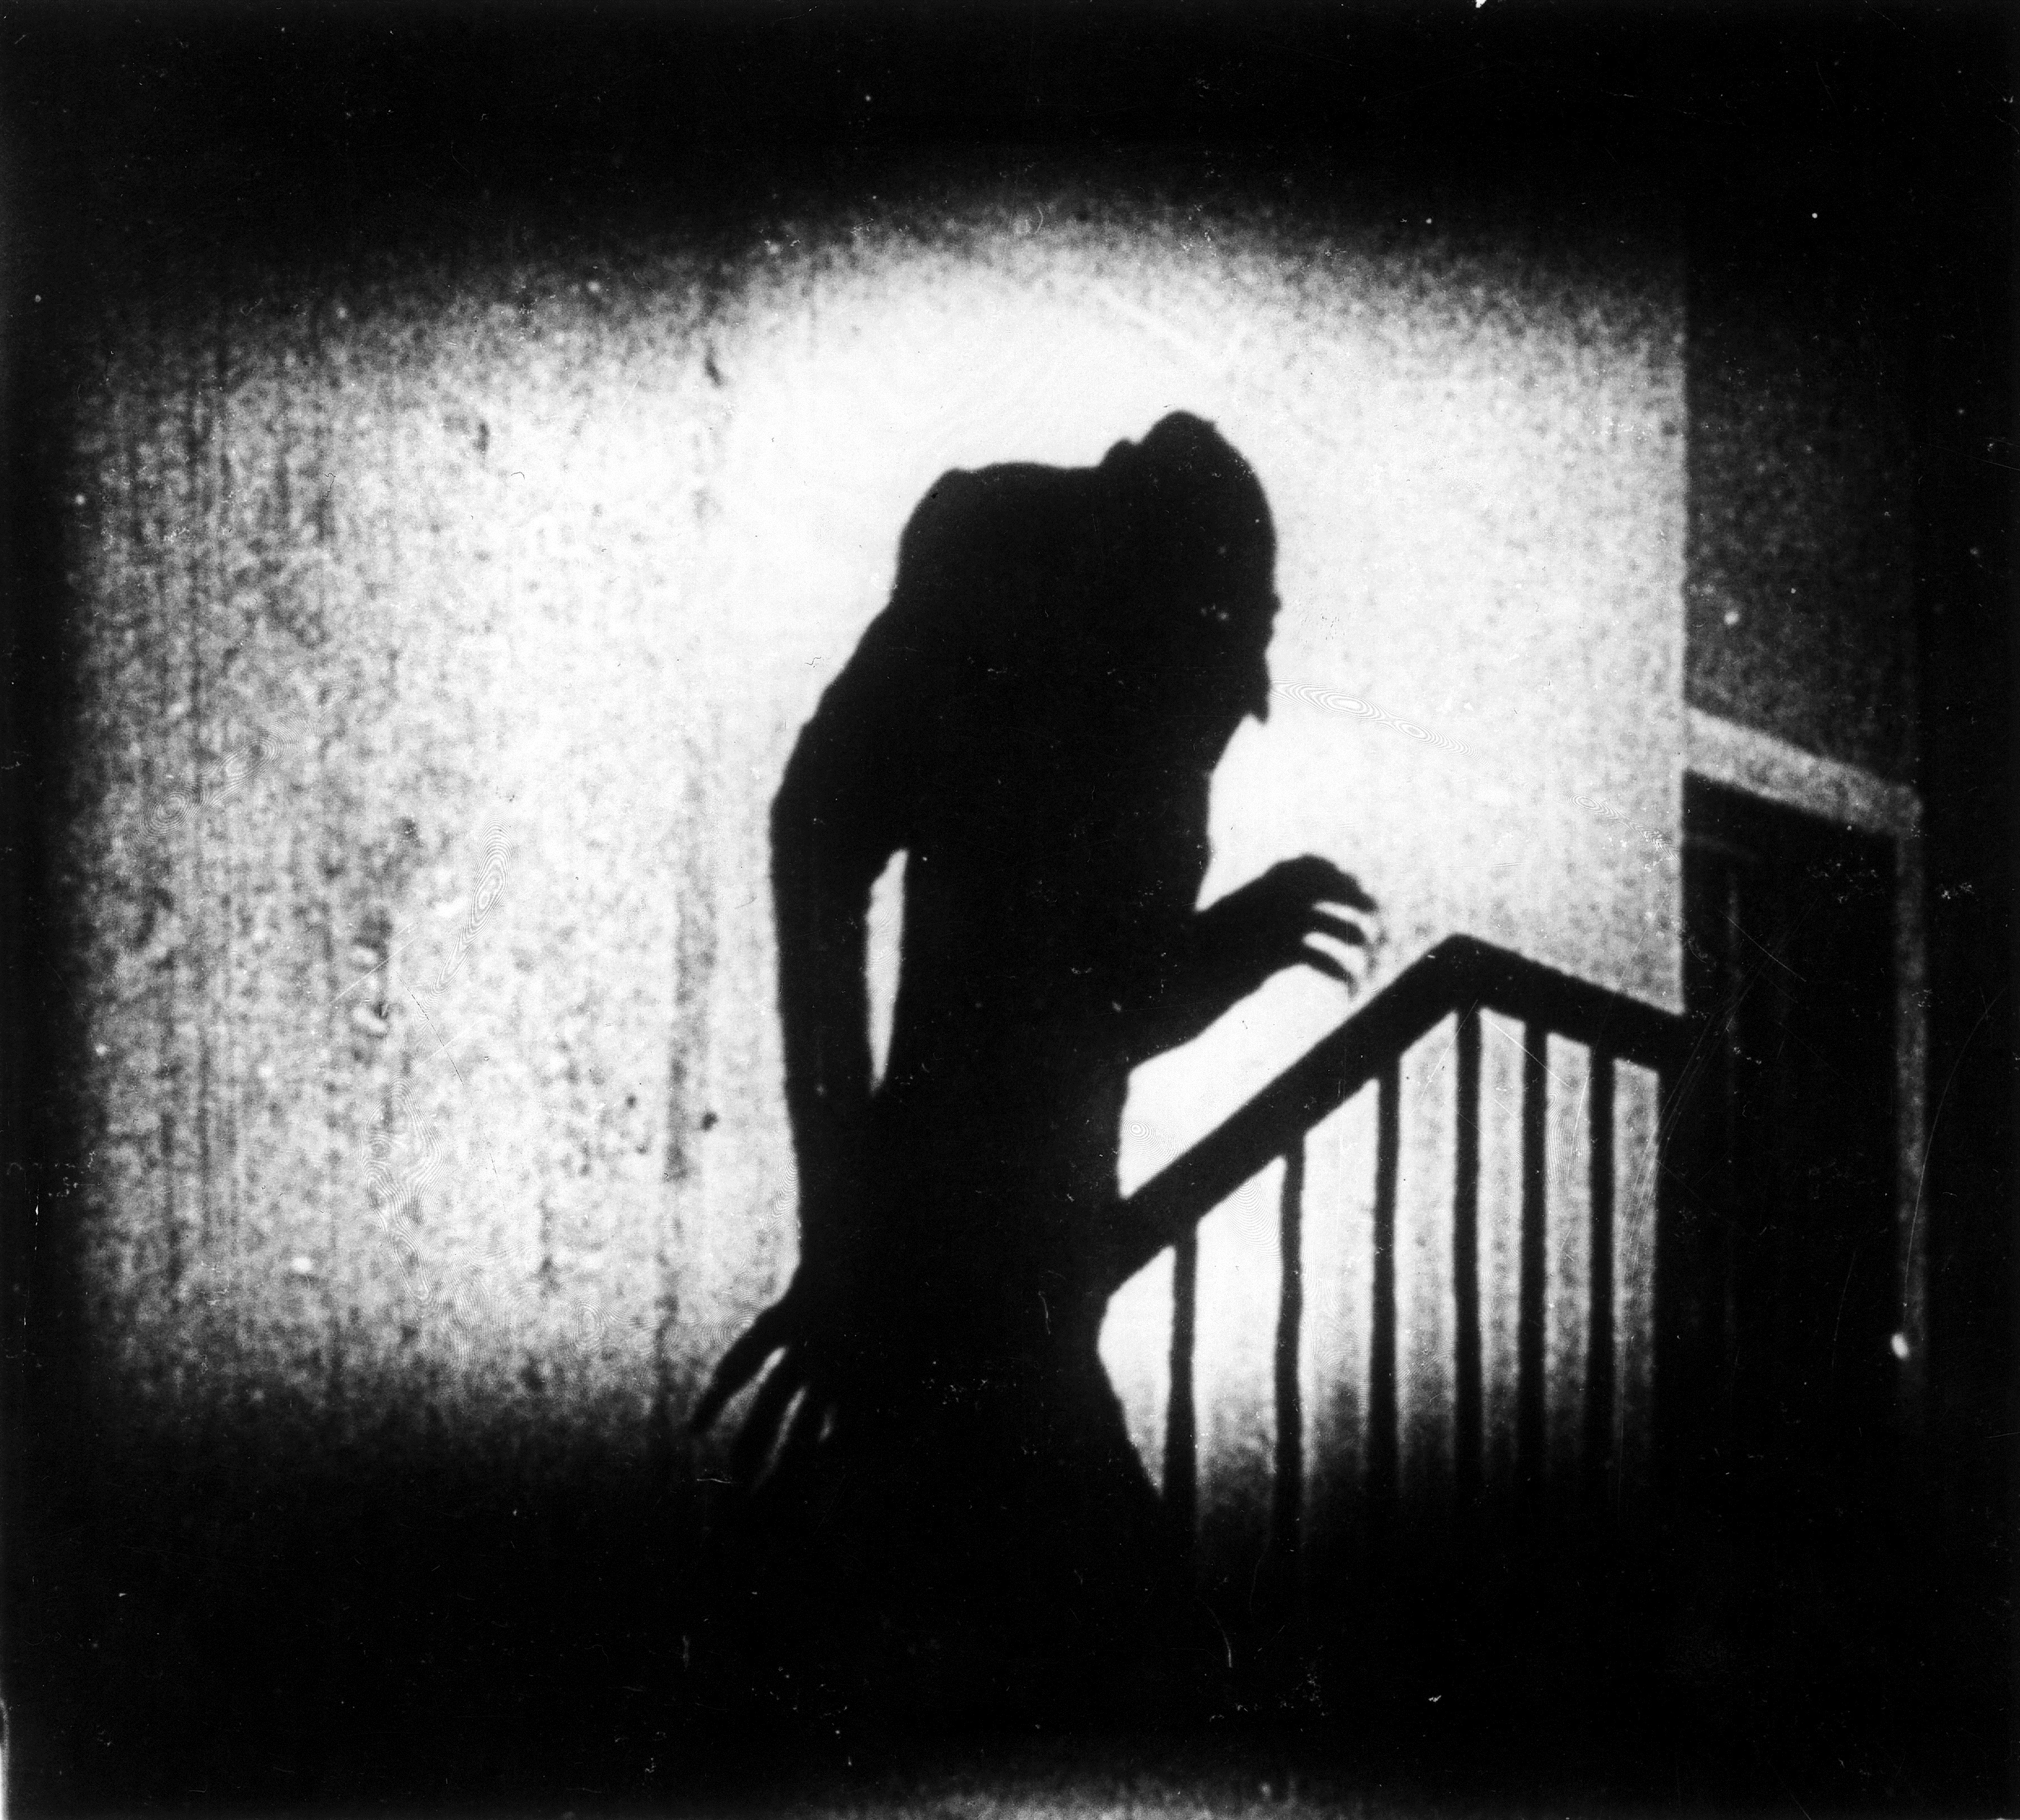 The Ulster Hall hosts a special screening of Nosferatu - the classic 1922 vampire horror film - on Tuesday 8 February, accompanied by an improvised score on the Mulholland Grand Organ by acclaimed organist, Martin Baker.